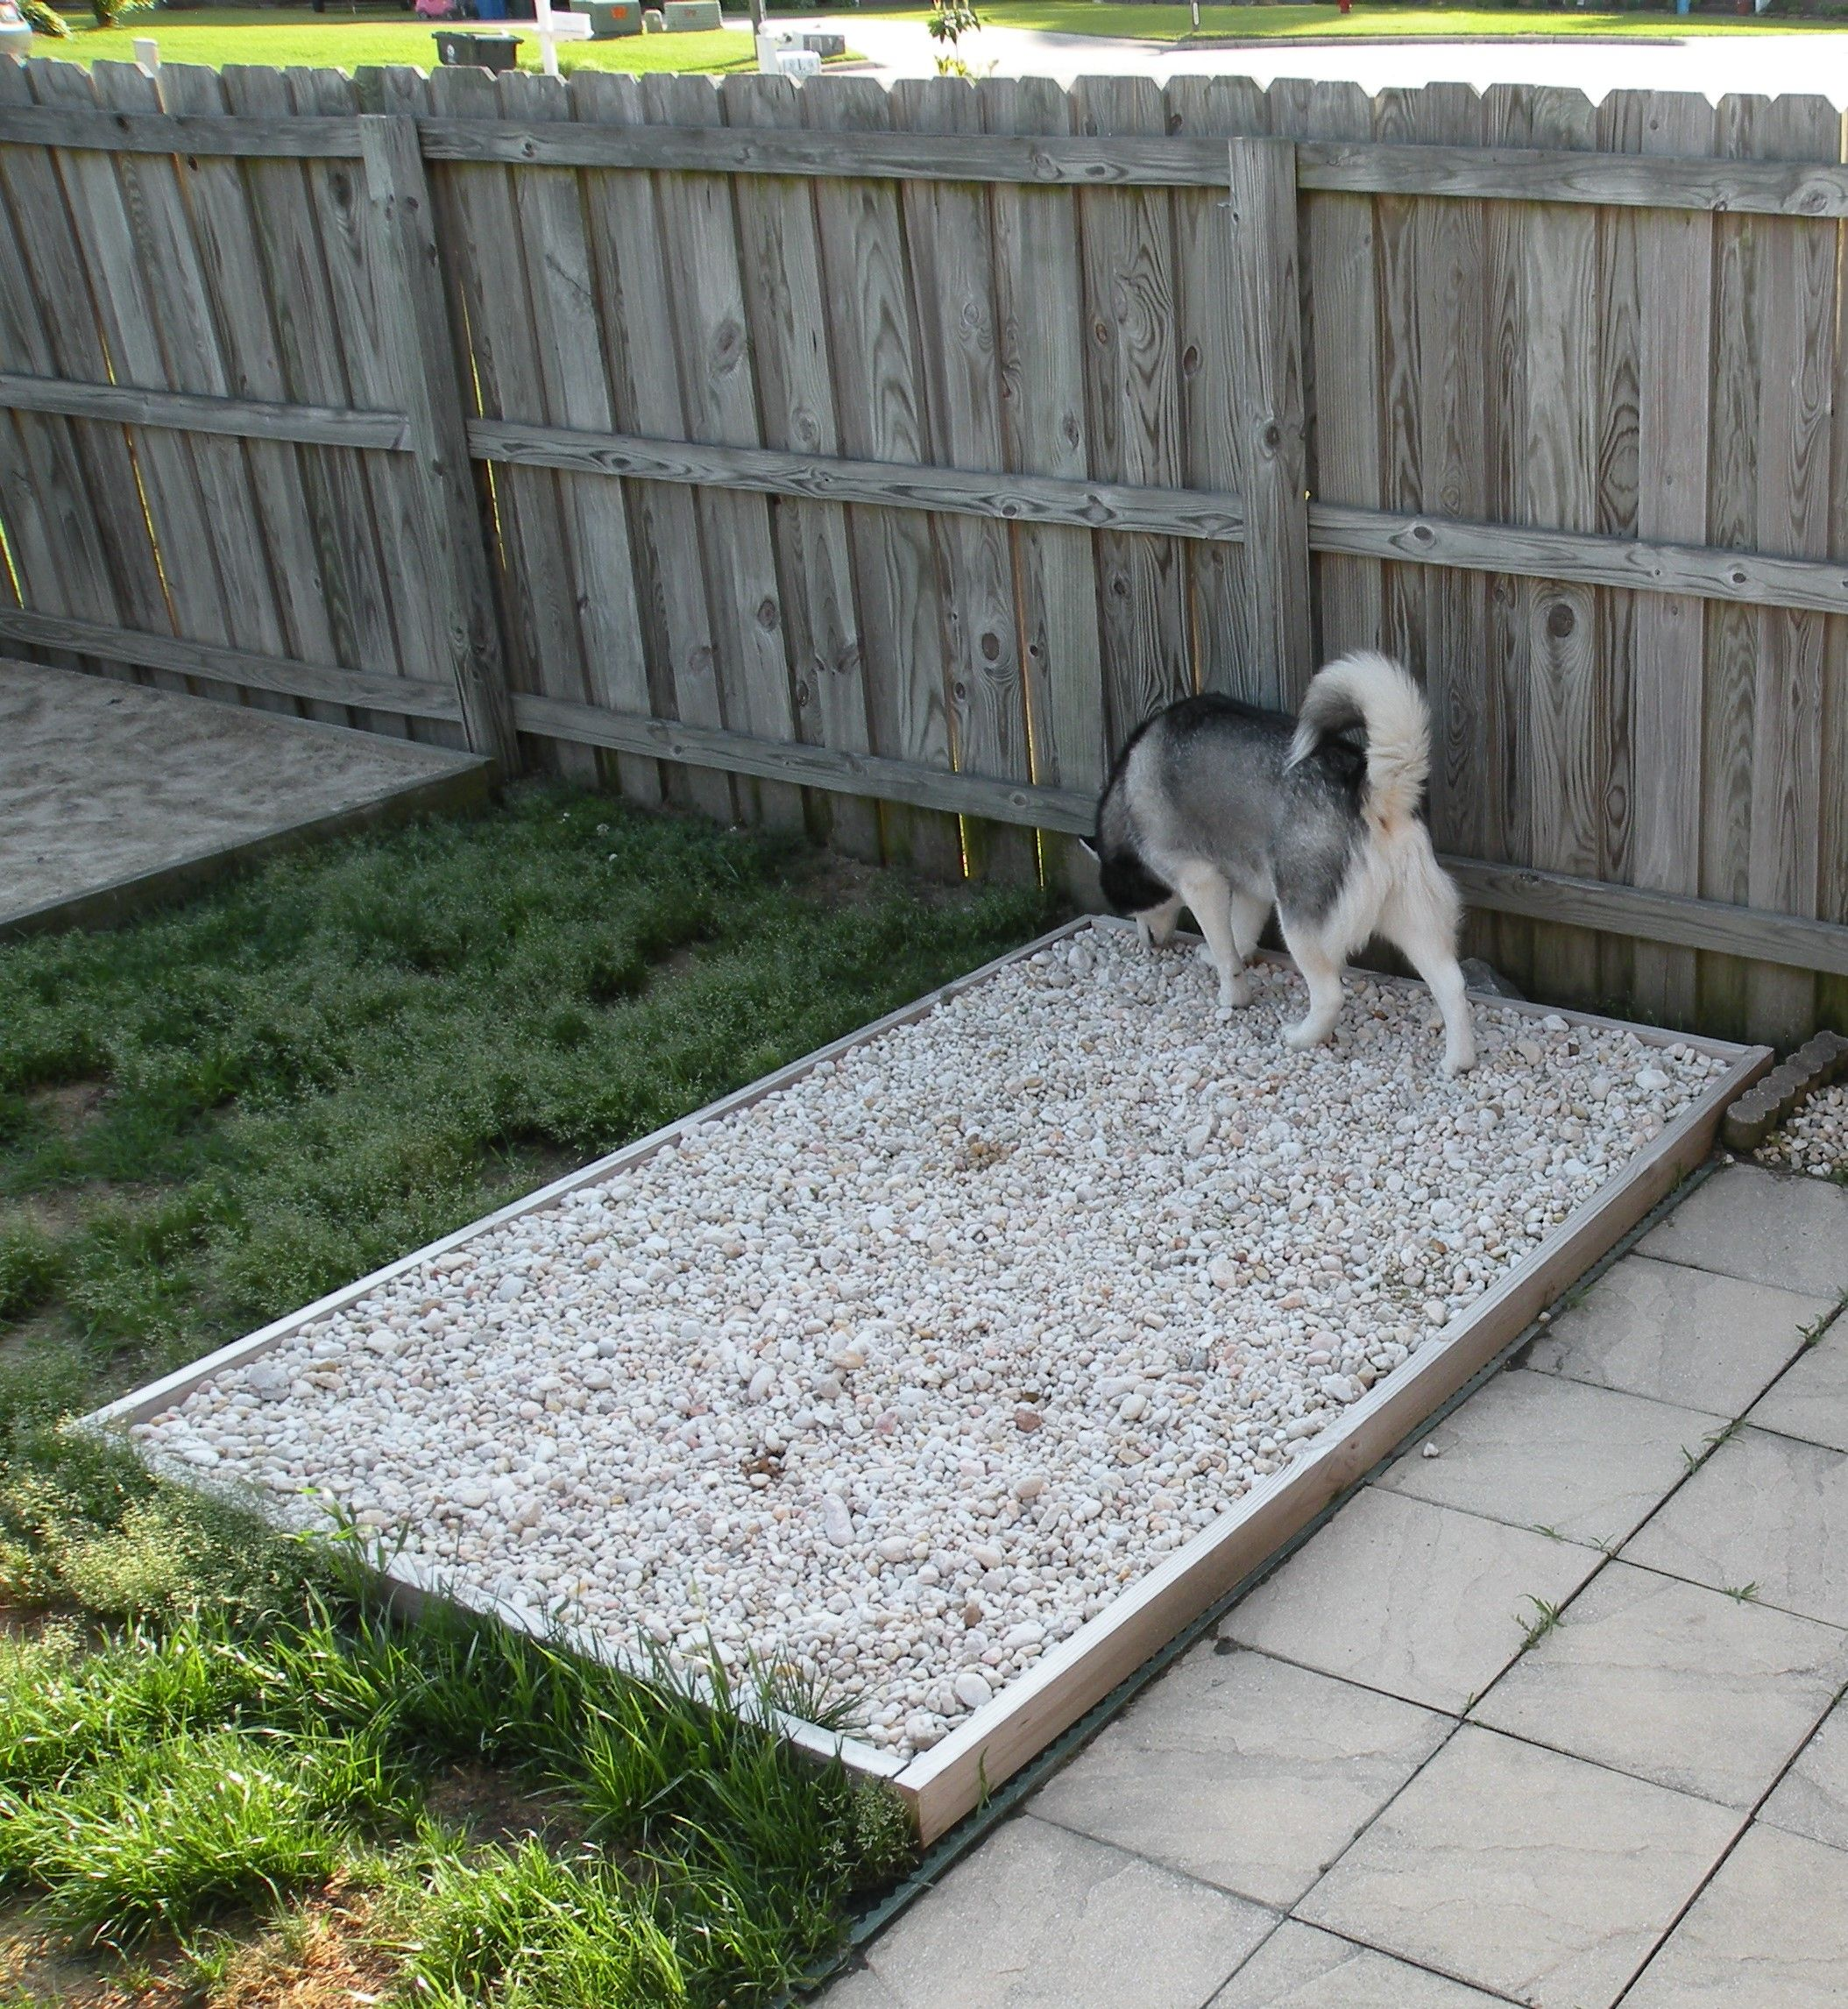 Outdoor Potty rock area for the dogs. Has underground